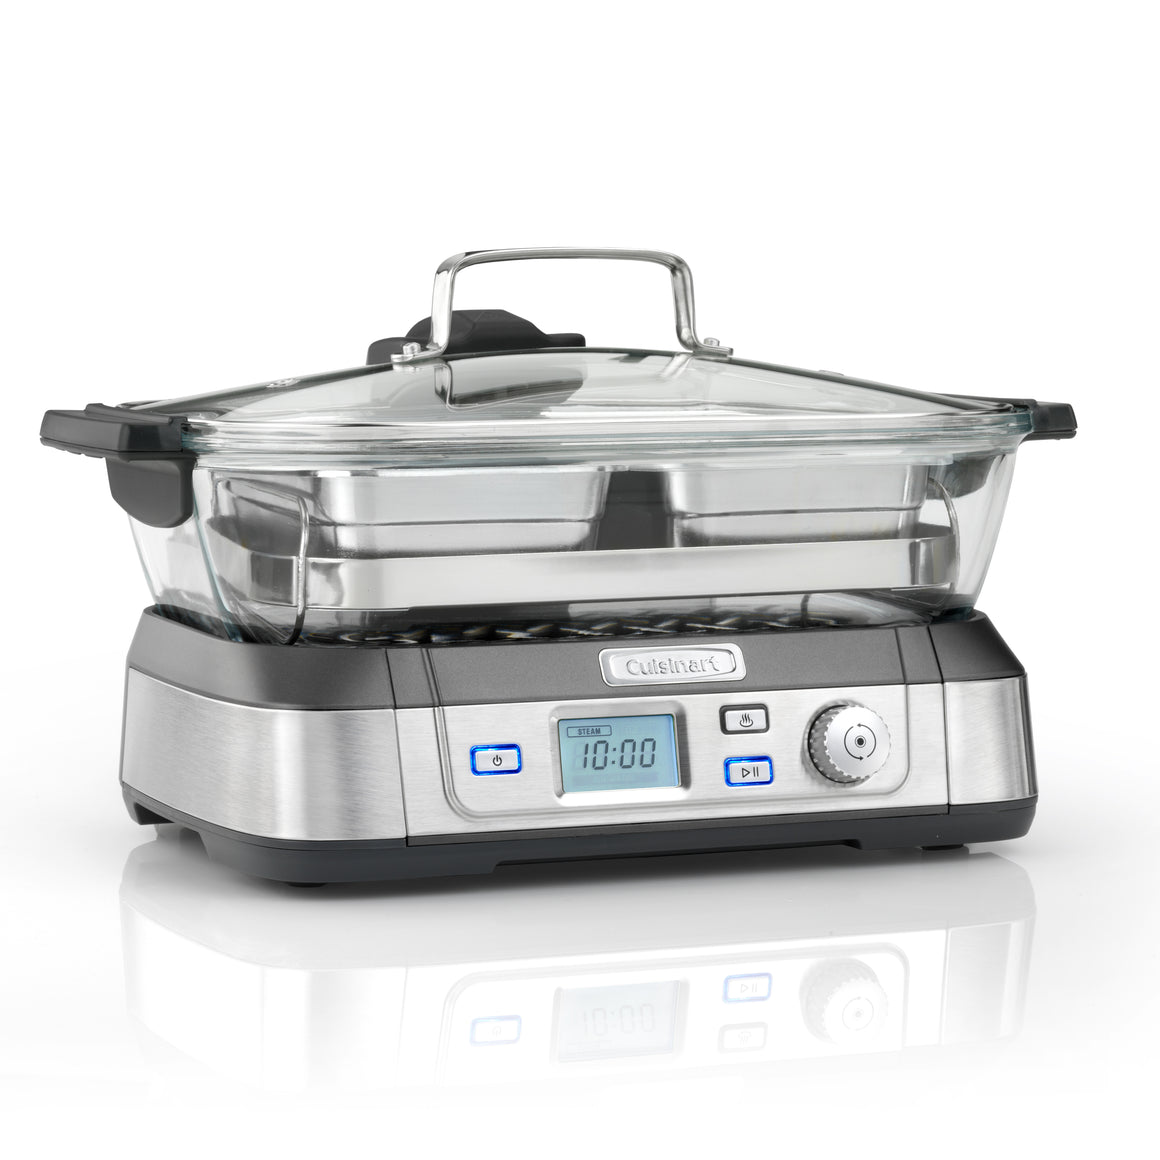 Cuisinart Cookfresh Professional Glass Steamer